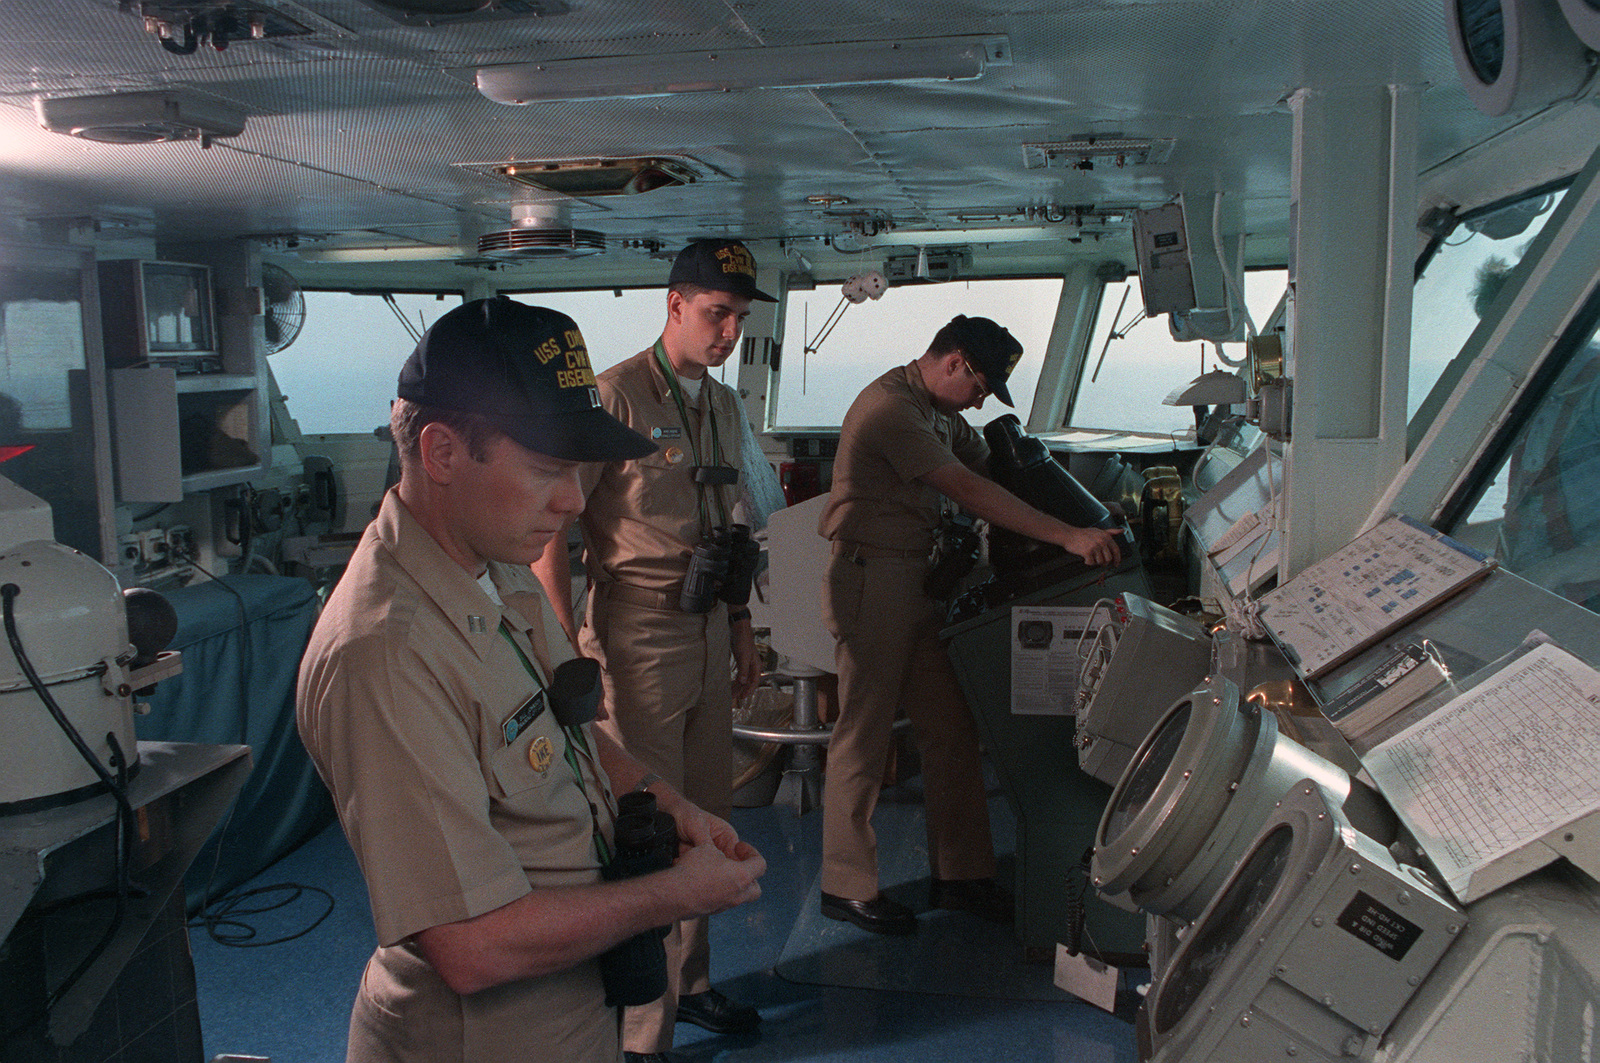 officers-on-the-bridge-of-the-us-navy-usn-nuclear-powered-aircraft-carrier-a20803-1600.jpg